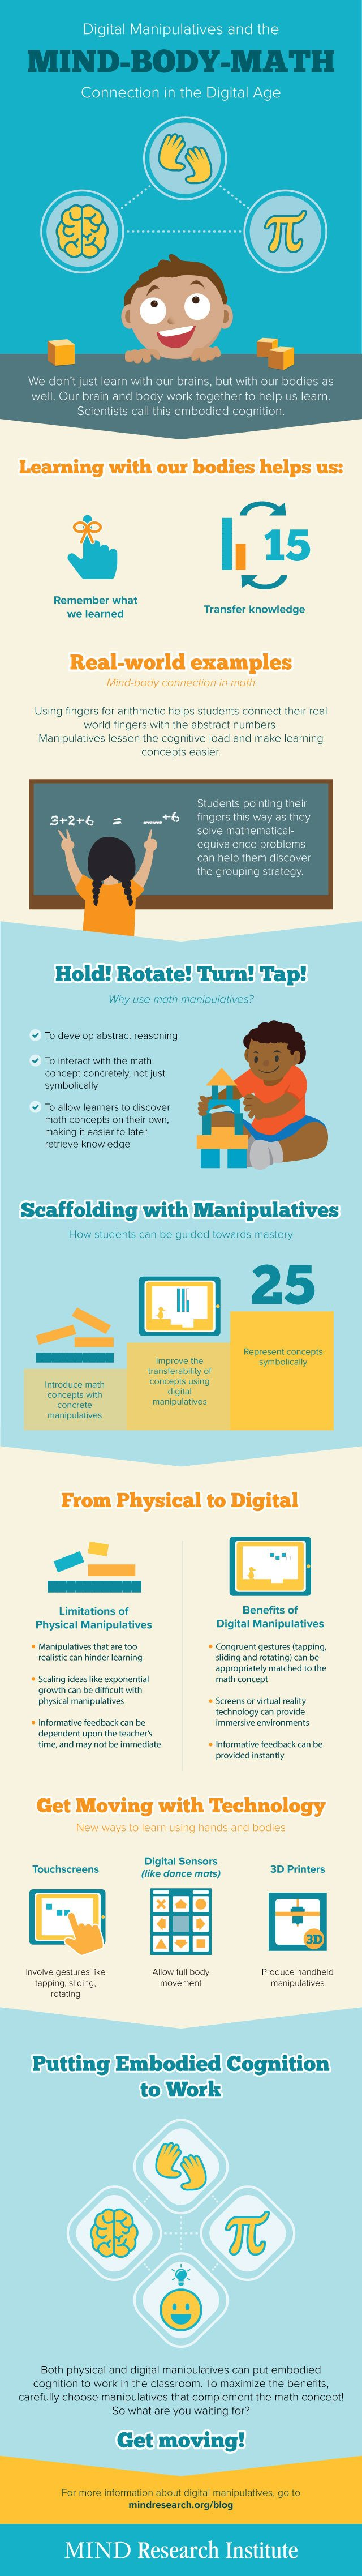 Mind-Body Math: Manipulatives in the Digital Age Infographic